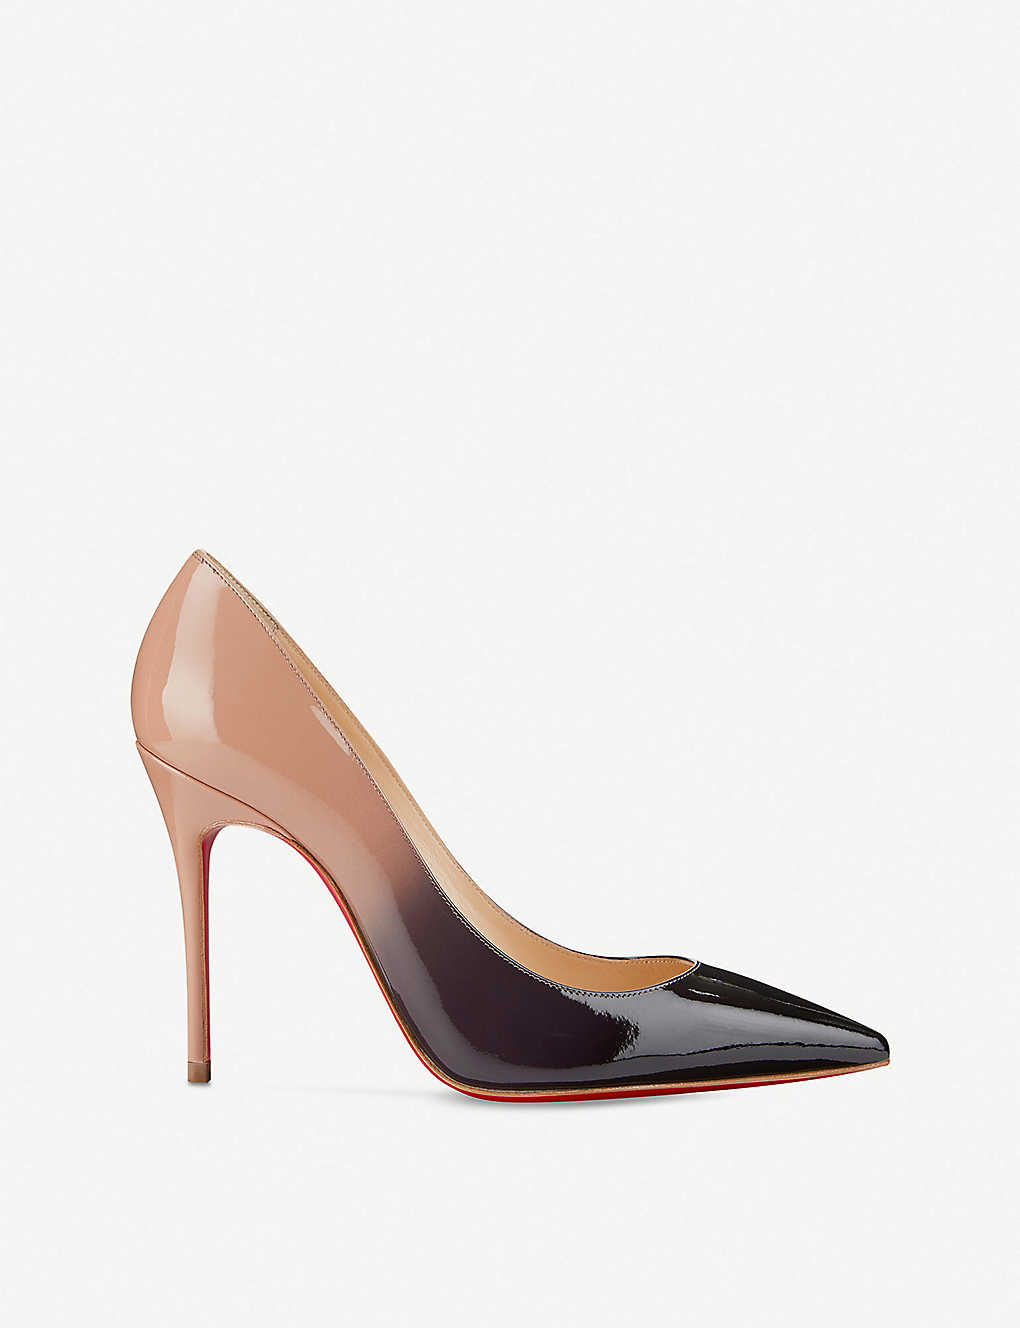 e3a6653786 CHRISTIAN LOUBOUTIN - Kate 100 patent degrade | Selfridges.com